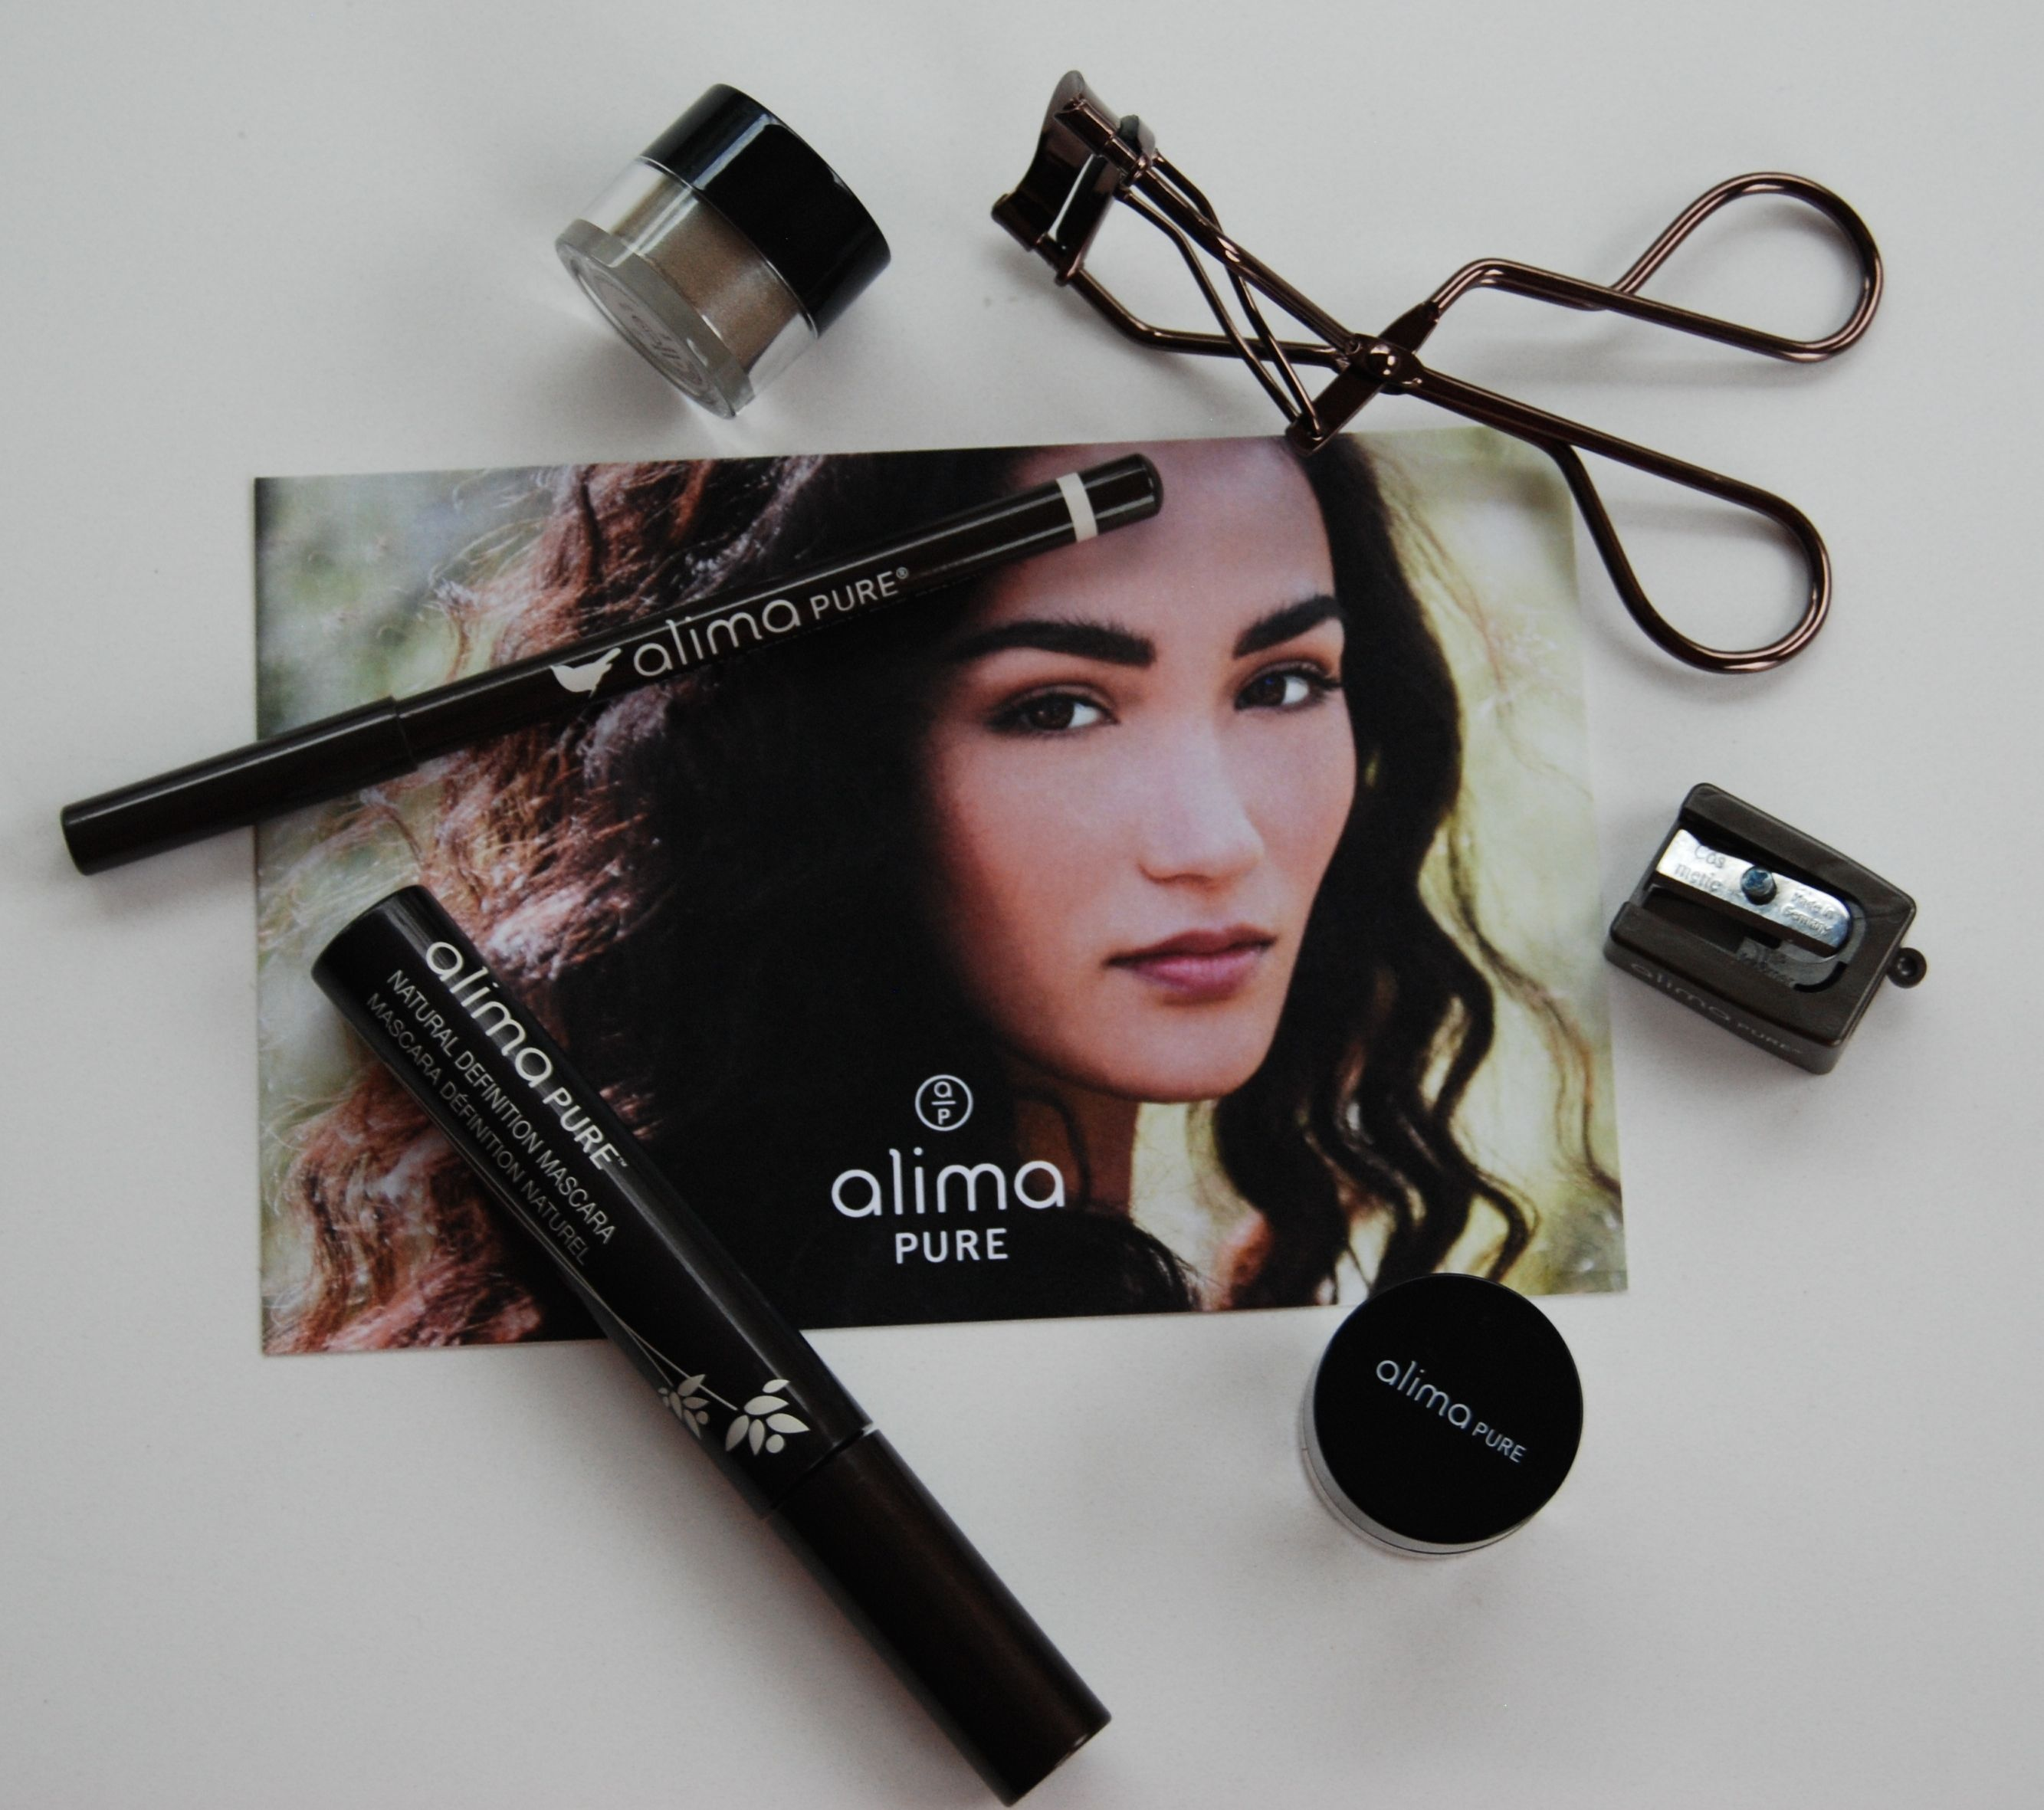 ccfc826121d Alima Pure has been a longtime favorite of mine so I was thrilled to check  out the Smoky Eye Kit. Their blushes are gorgeous and they have a stellar  range ...